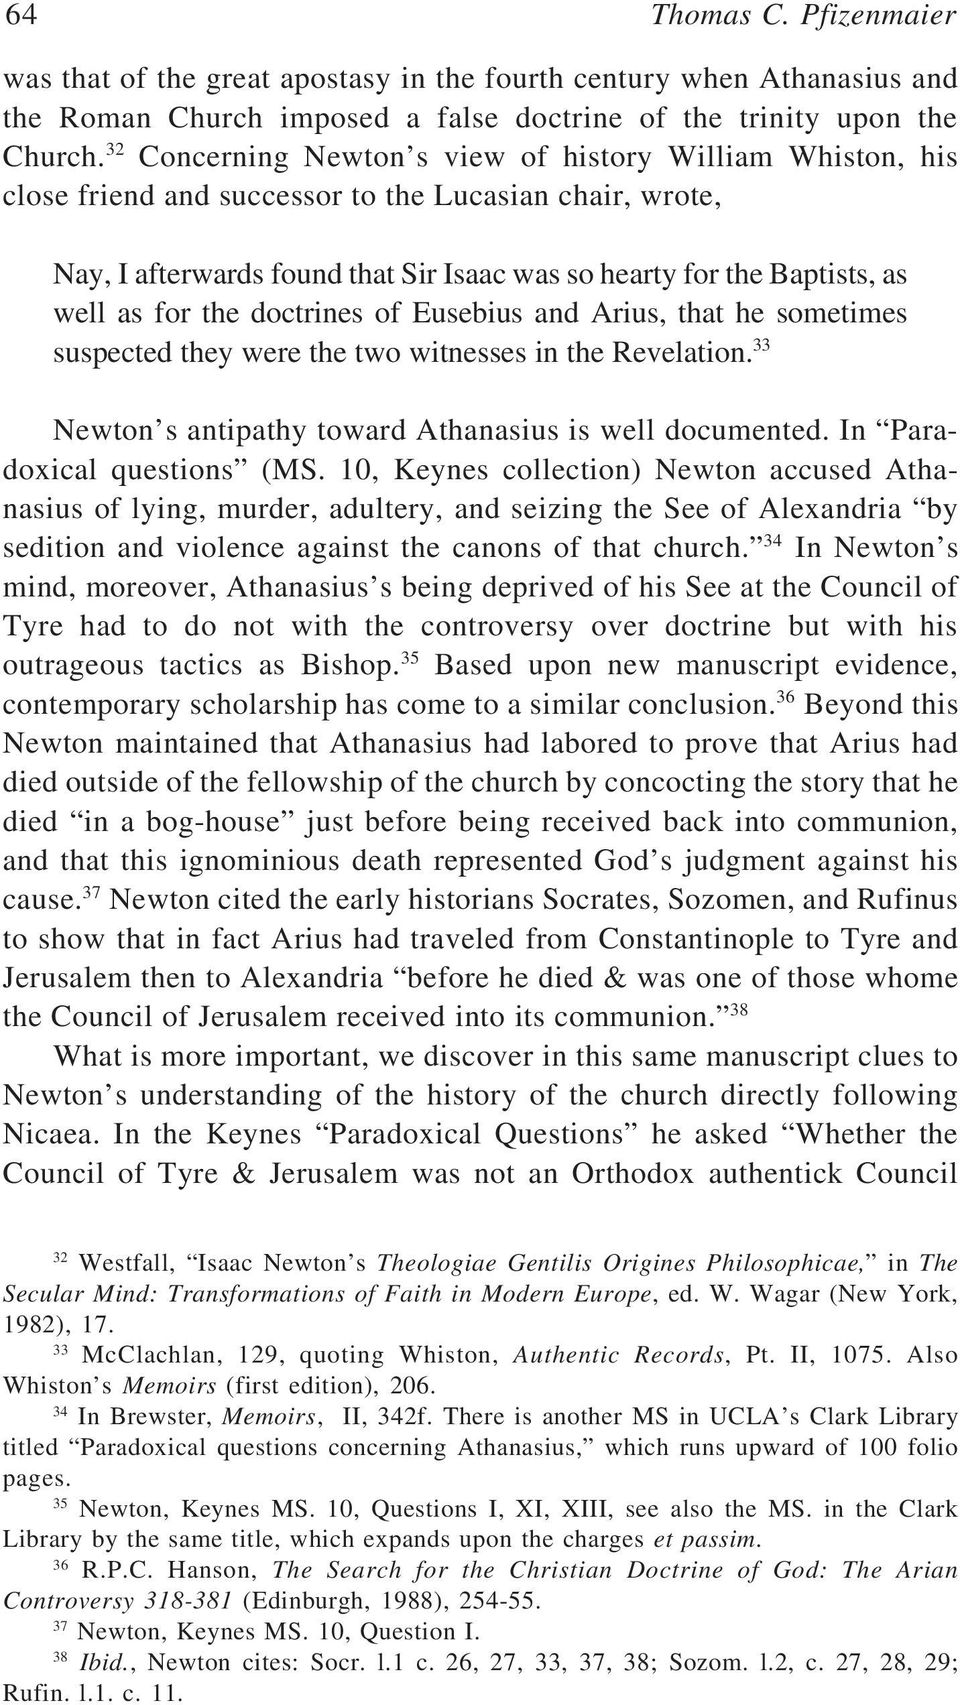 for the doctrines of Eusebius and Arius, that he sometimes suspected they were the two witnesses in the Revelation. 33 Newton s antipathy toward Athanasius is well documented.